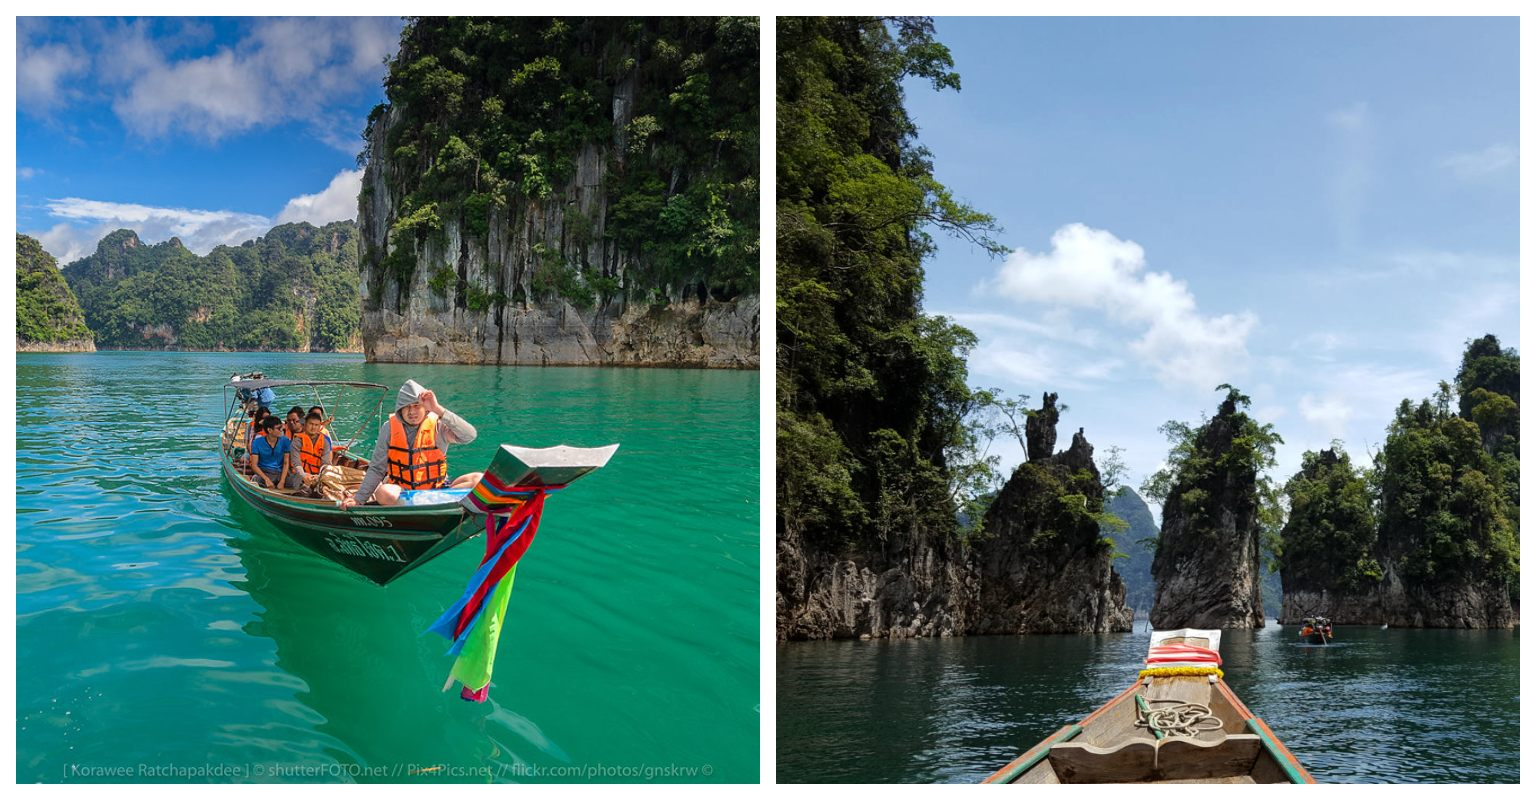 day trip to the lake, cheow Lan Lake in Khao Sok Thailand